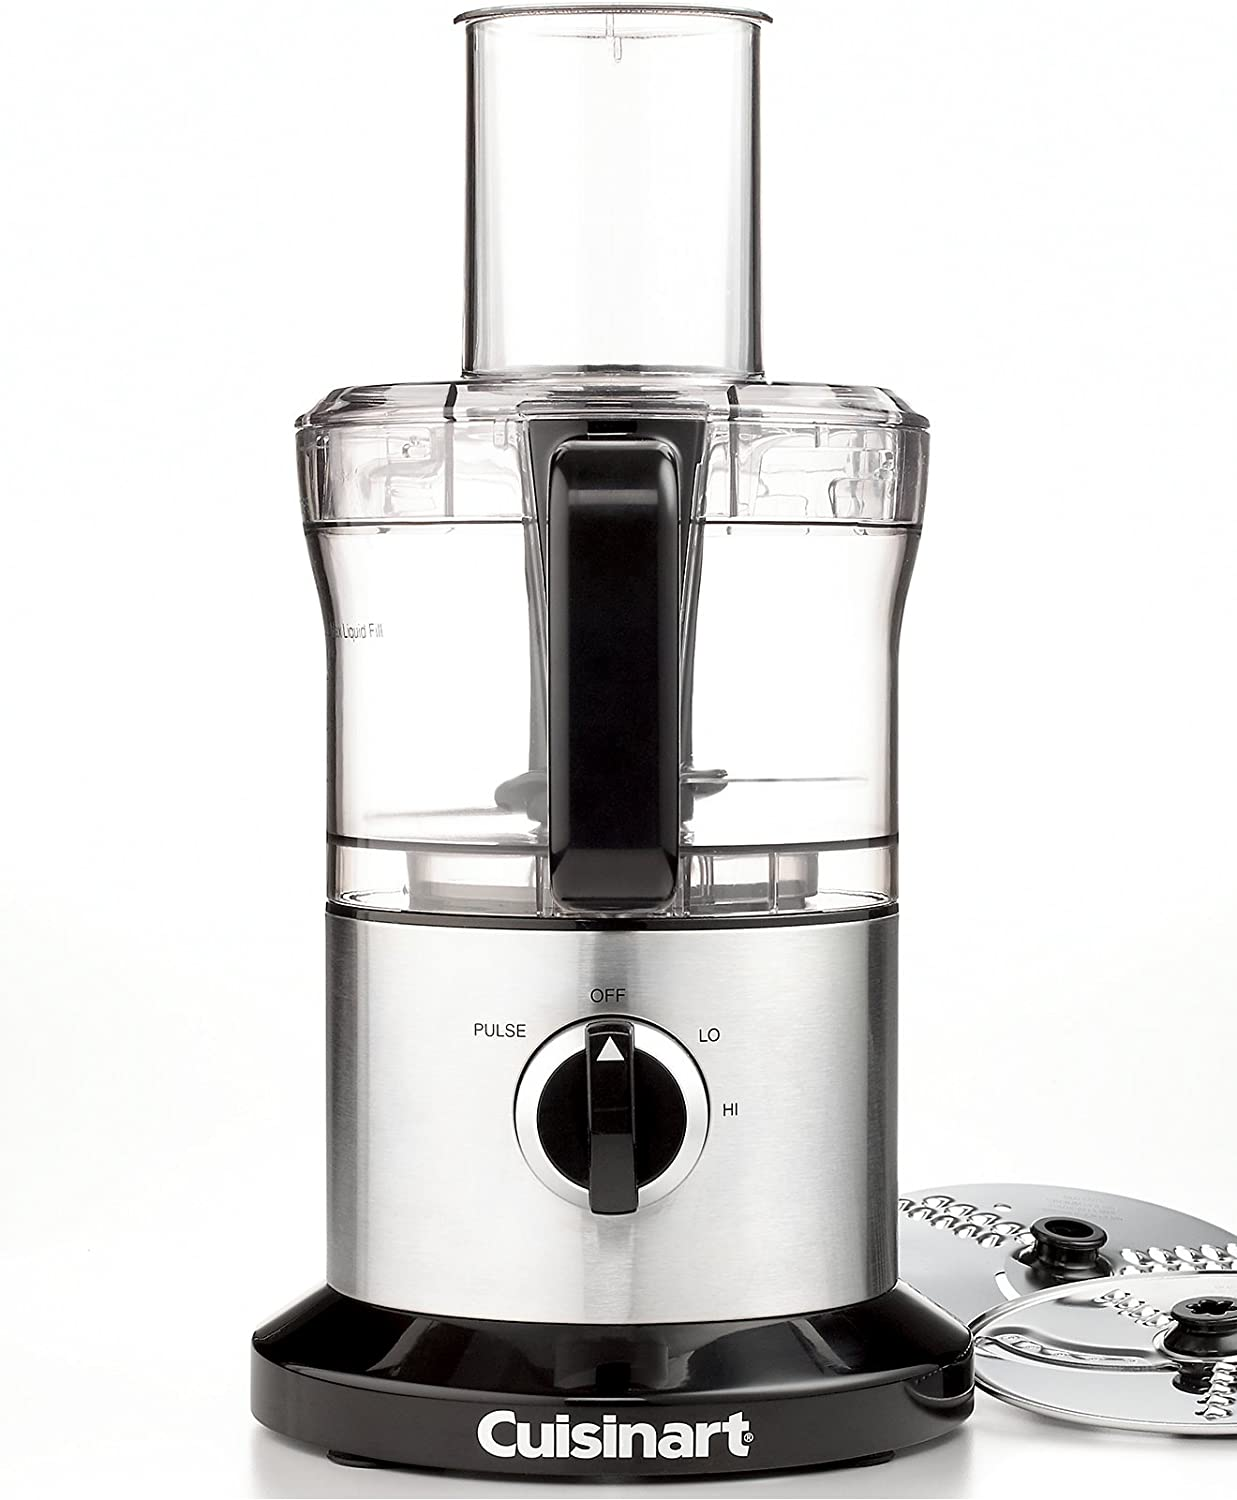 Cuisinart DLC-6FR 8 Cup Food Processor, Stainless Steel (Renewed)